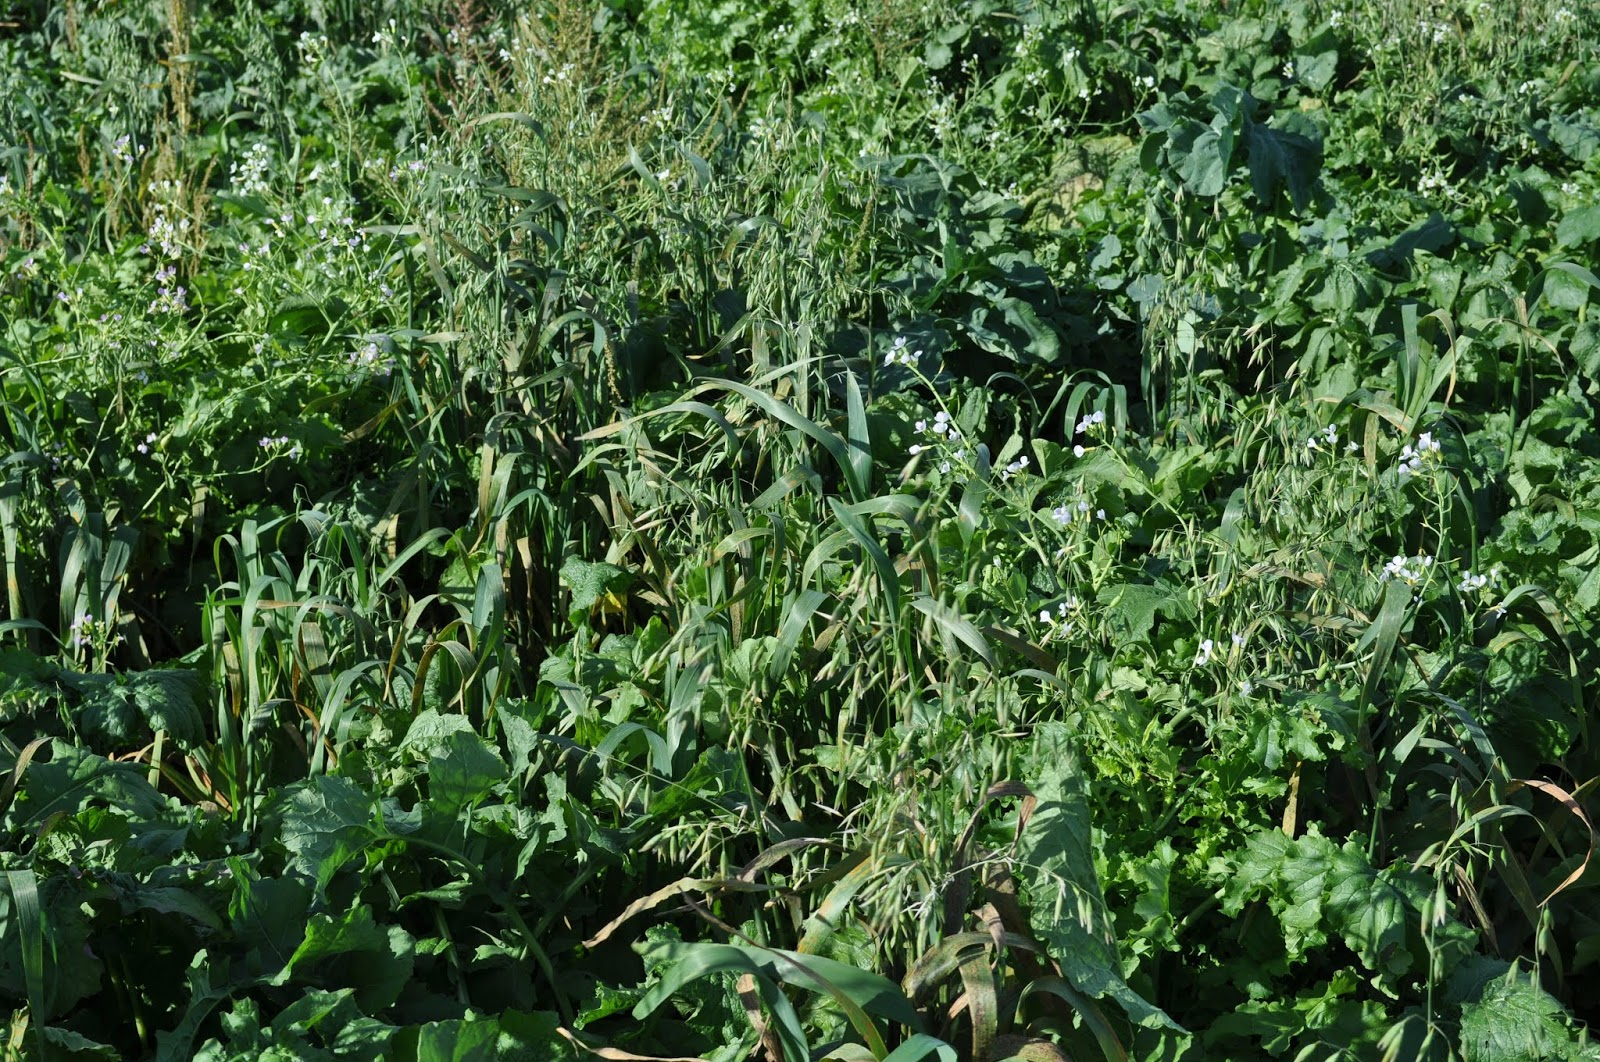 Cover Crop Options For Prevent Plant Acres Drowned Out Areas